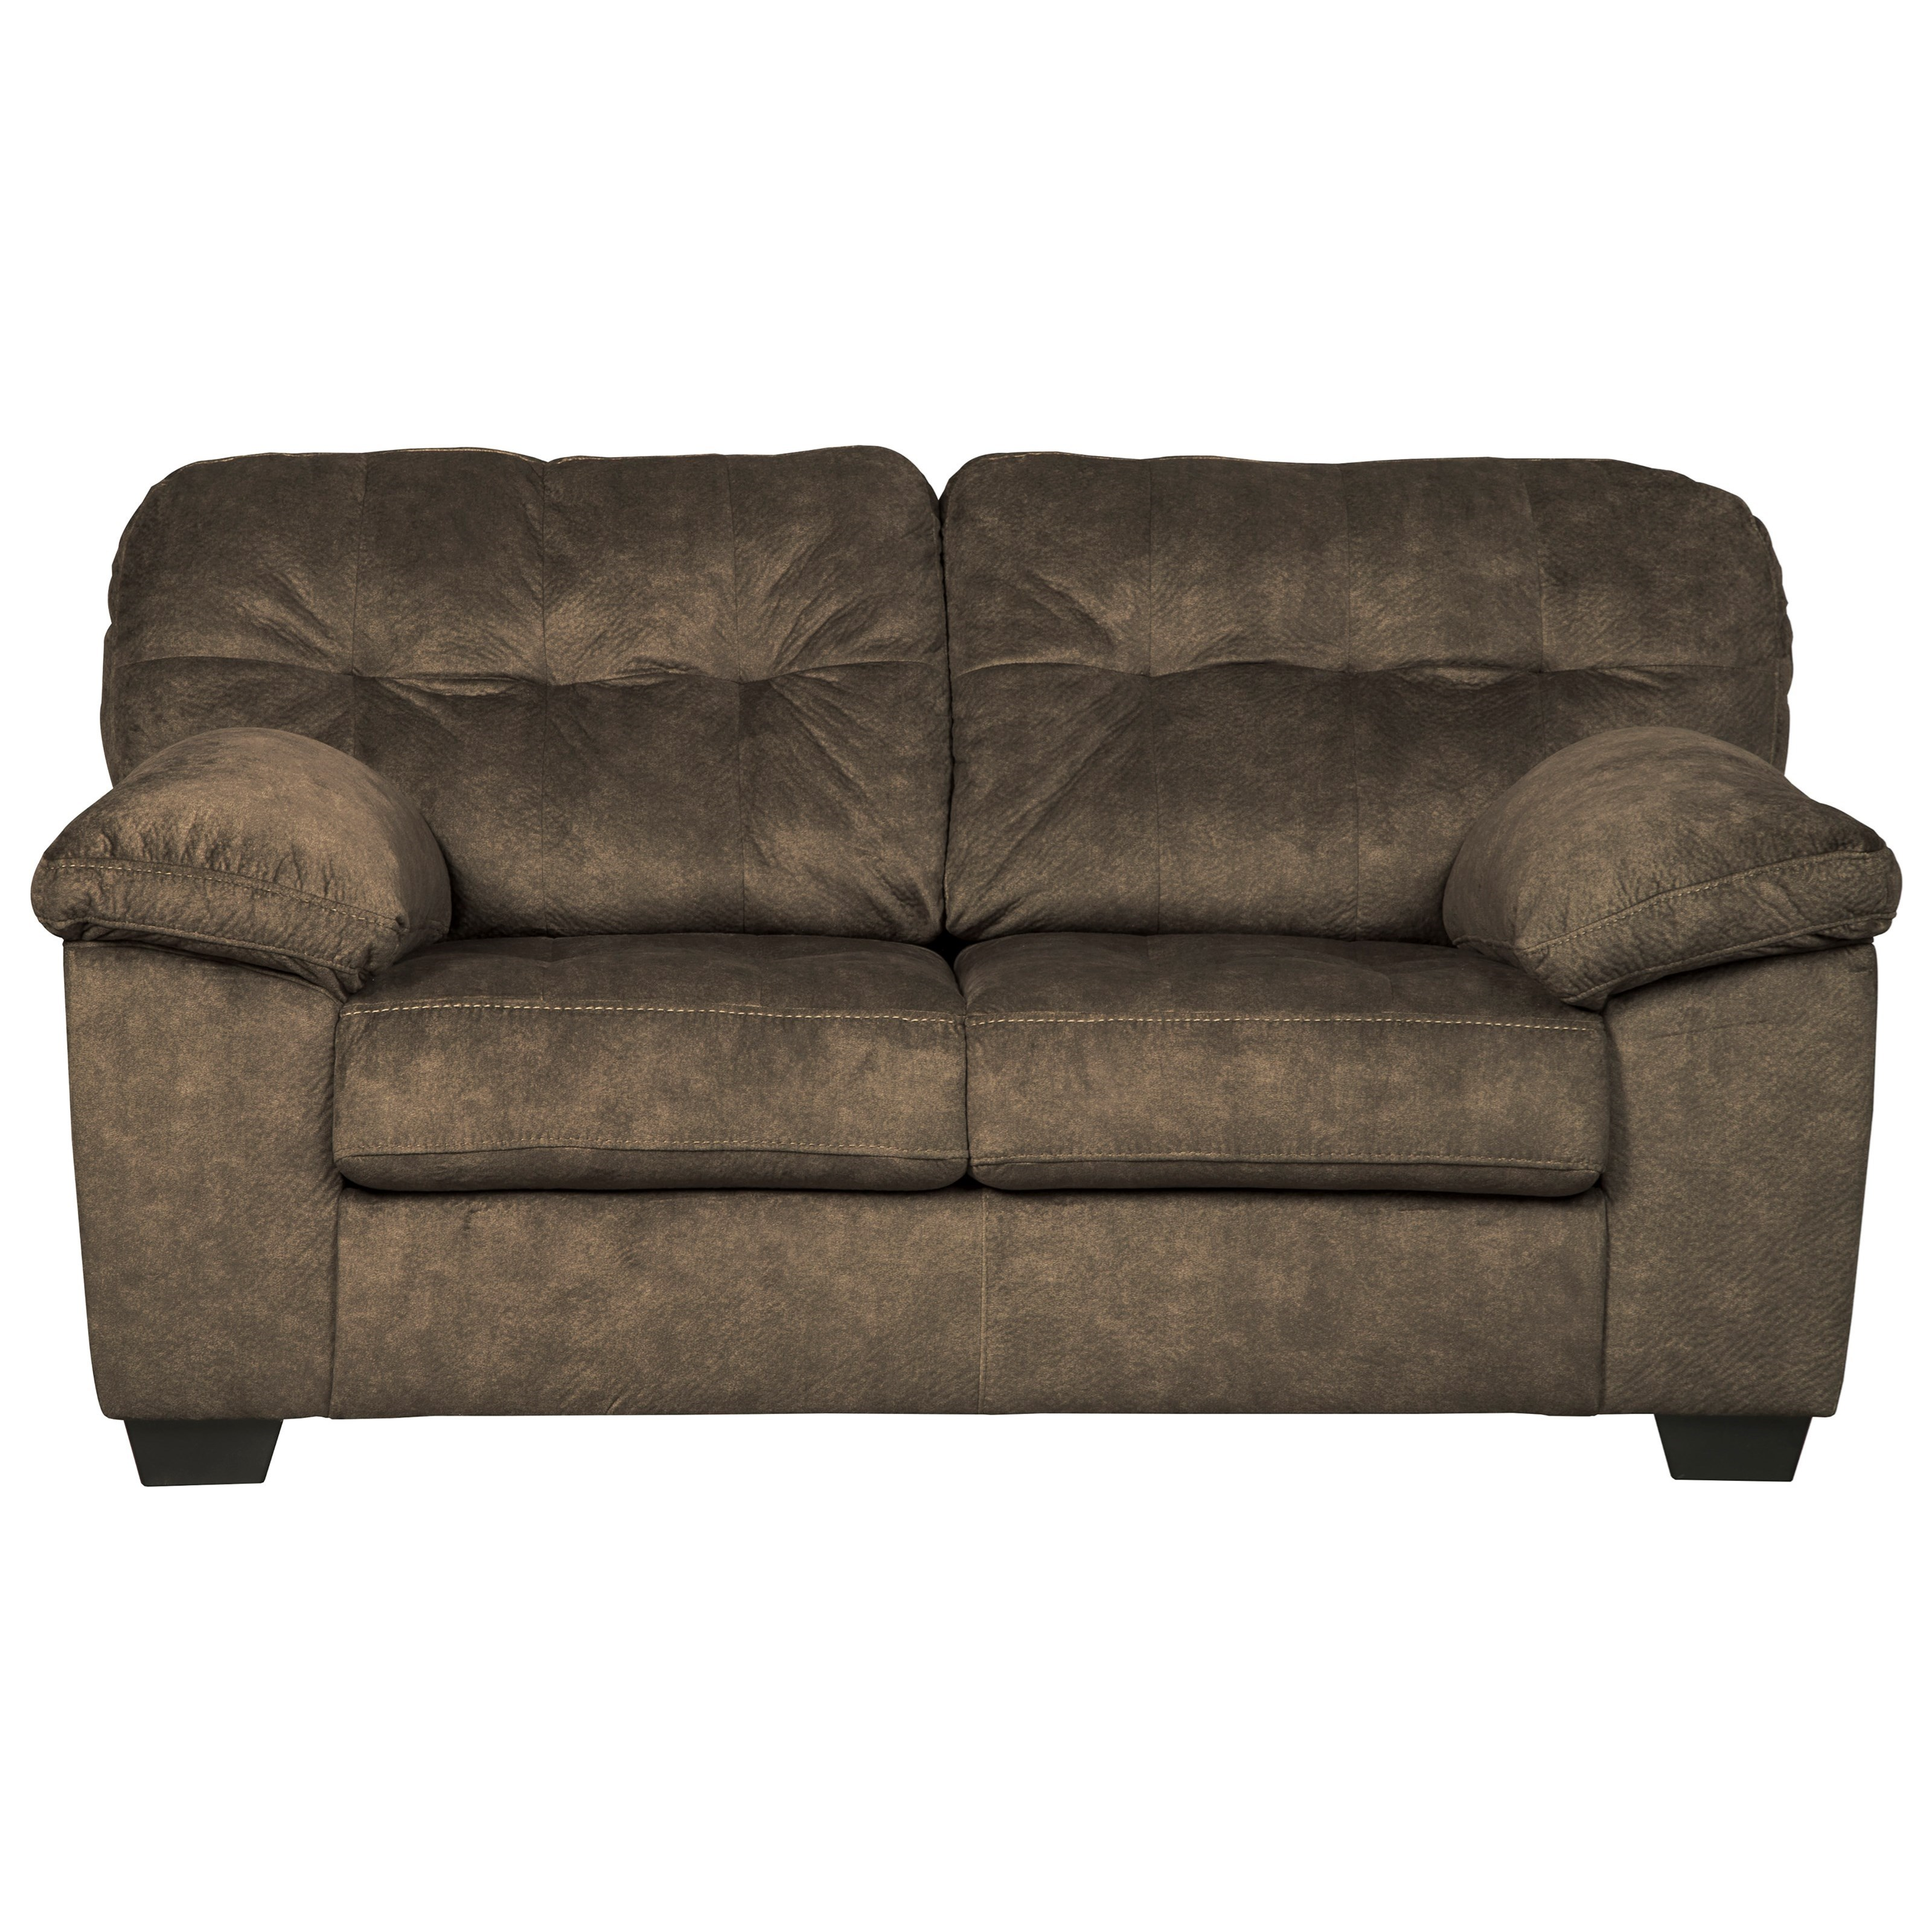 Signature Design by Ashley Accrington Loveseat - Item Number: 7050835